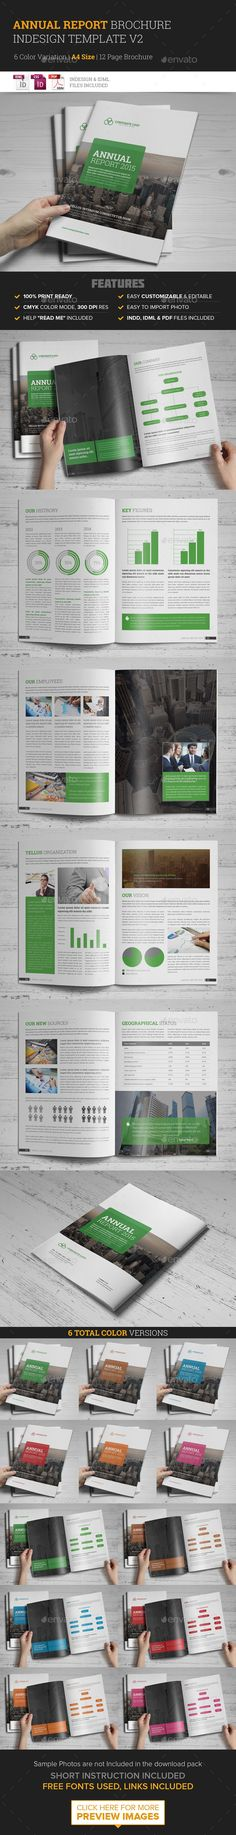 Annual Report Brochure Indesign Template v2 - Corporate Brochures